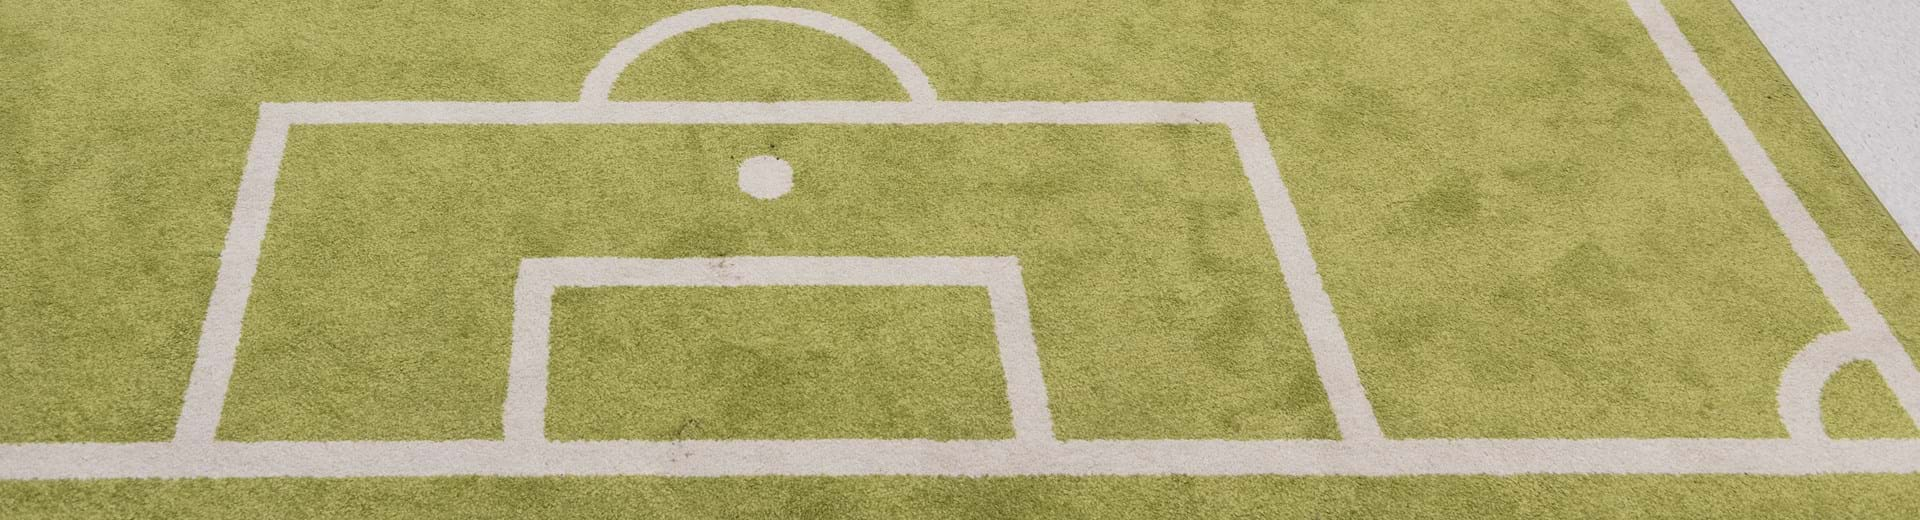 Very small robot on a miniature football pitch